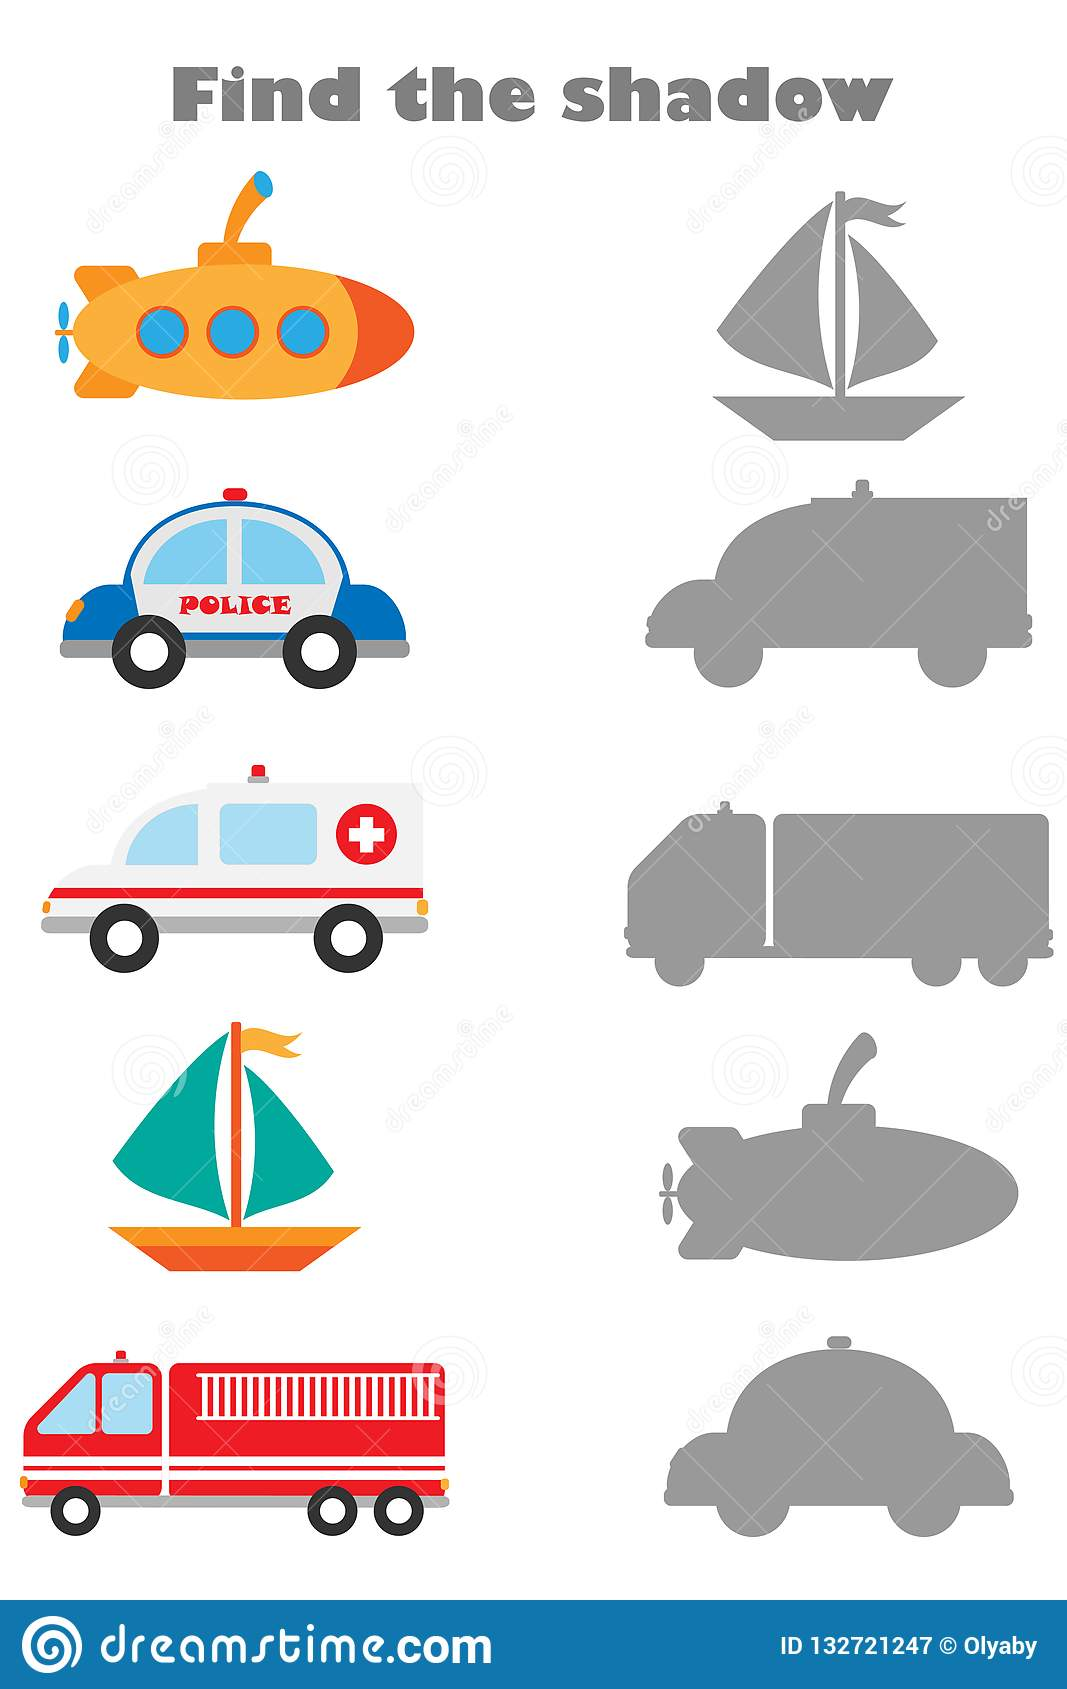 Find The Shadow Game With Pictures Of Different Transport